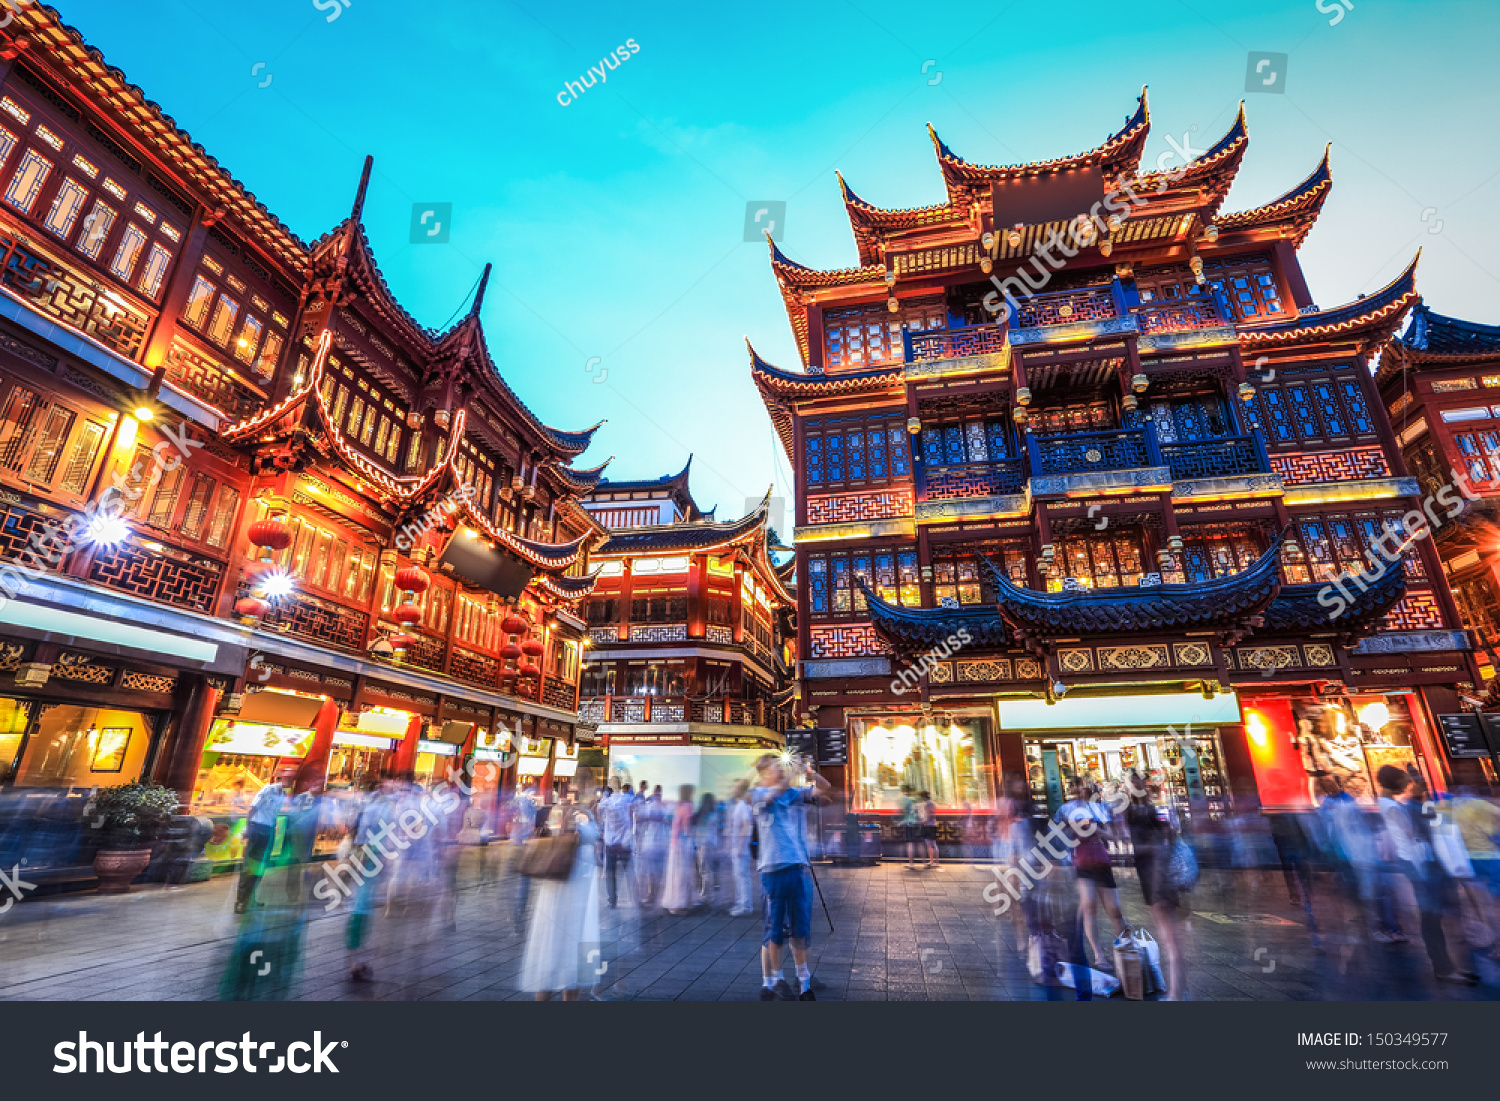 Beautiful Yuyuan Garden Nighttraditional Shopping Area ...